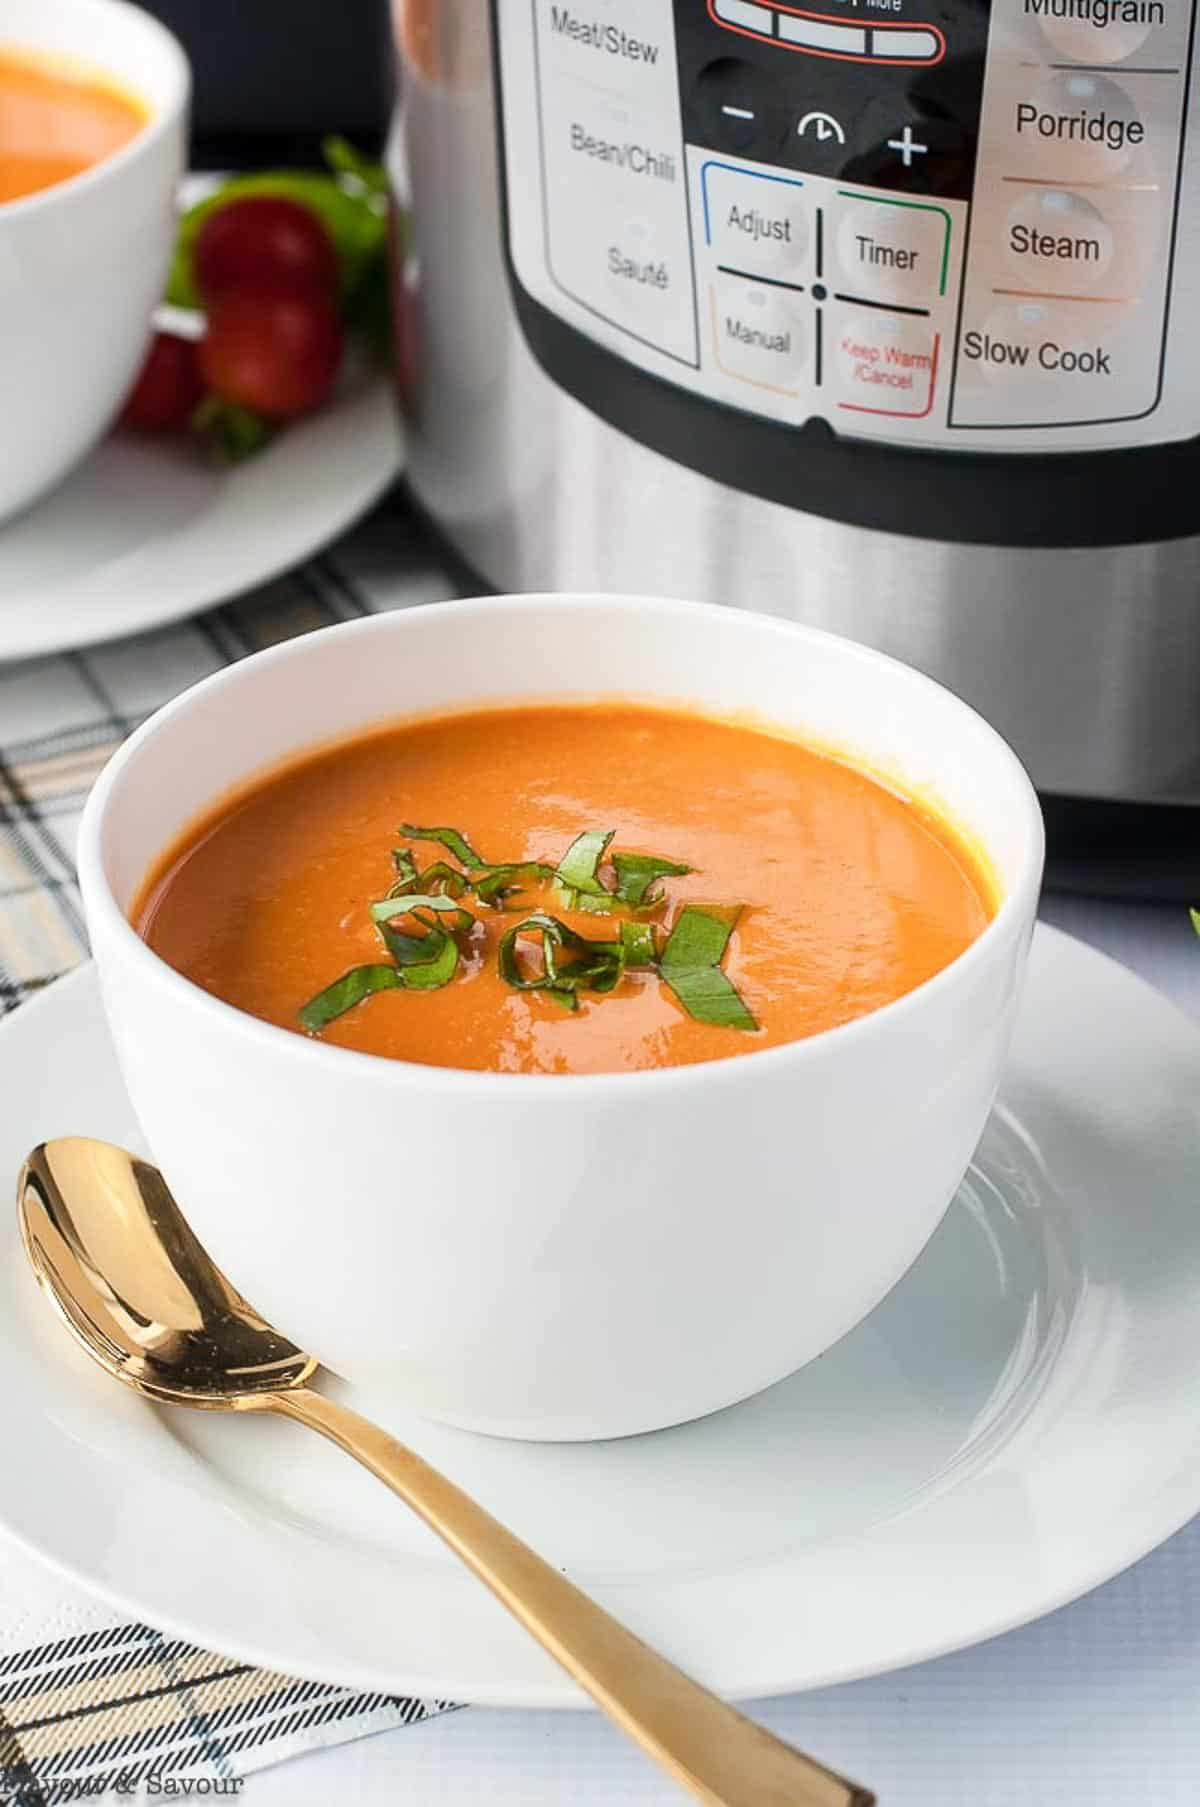 a bowl of creamy tomato soup beside an Instant Pot